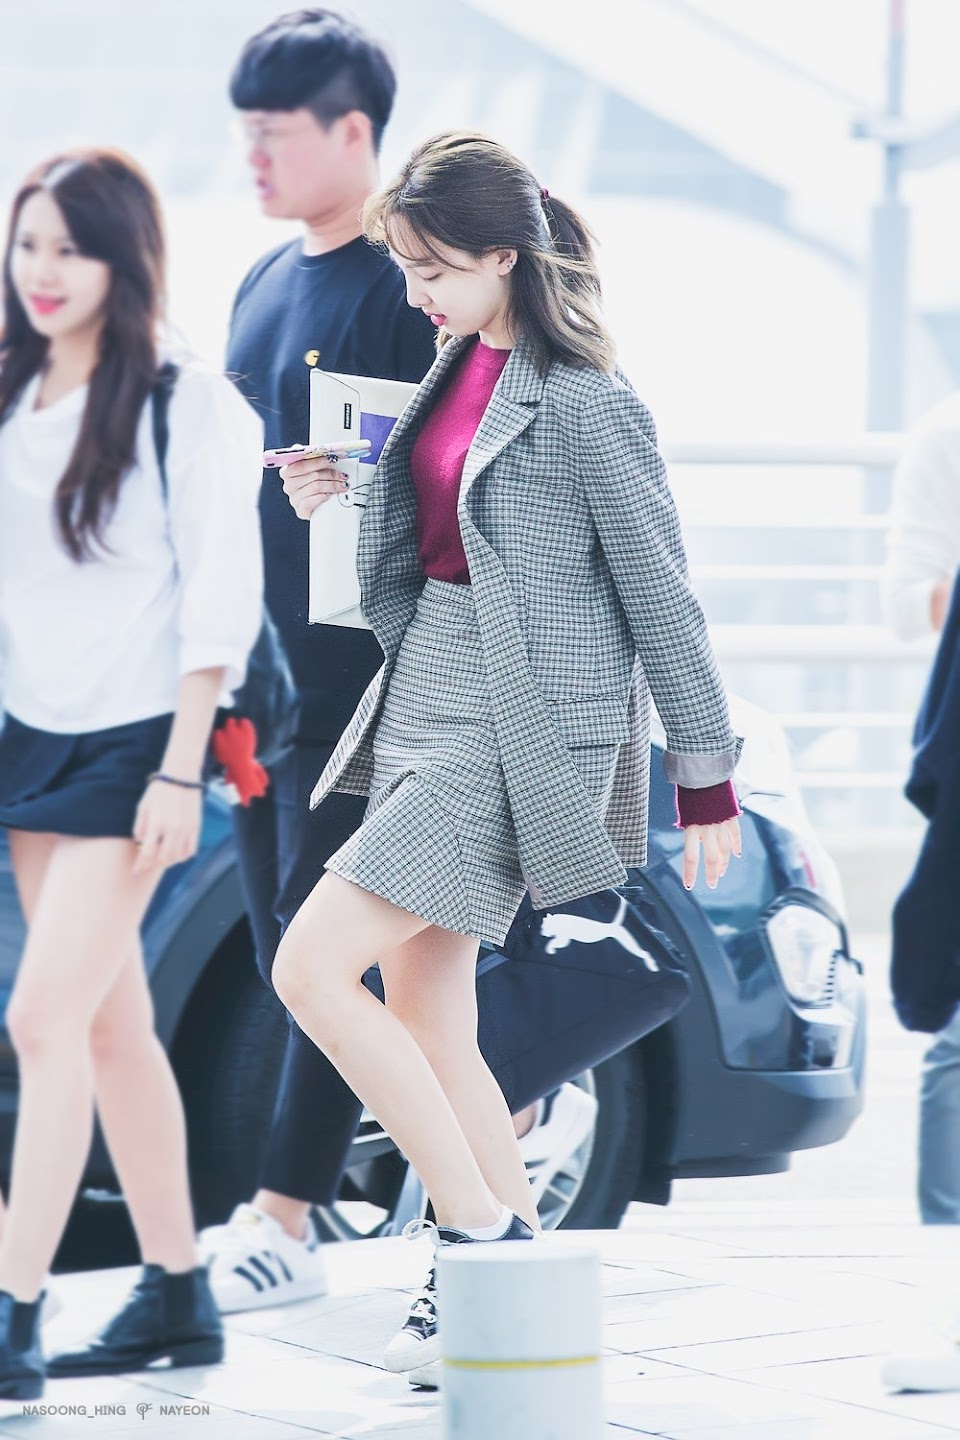 twice-nayeons-casual-airport-fashion-will-make-you-want-to-raid-her-closet